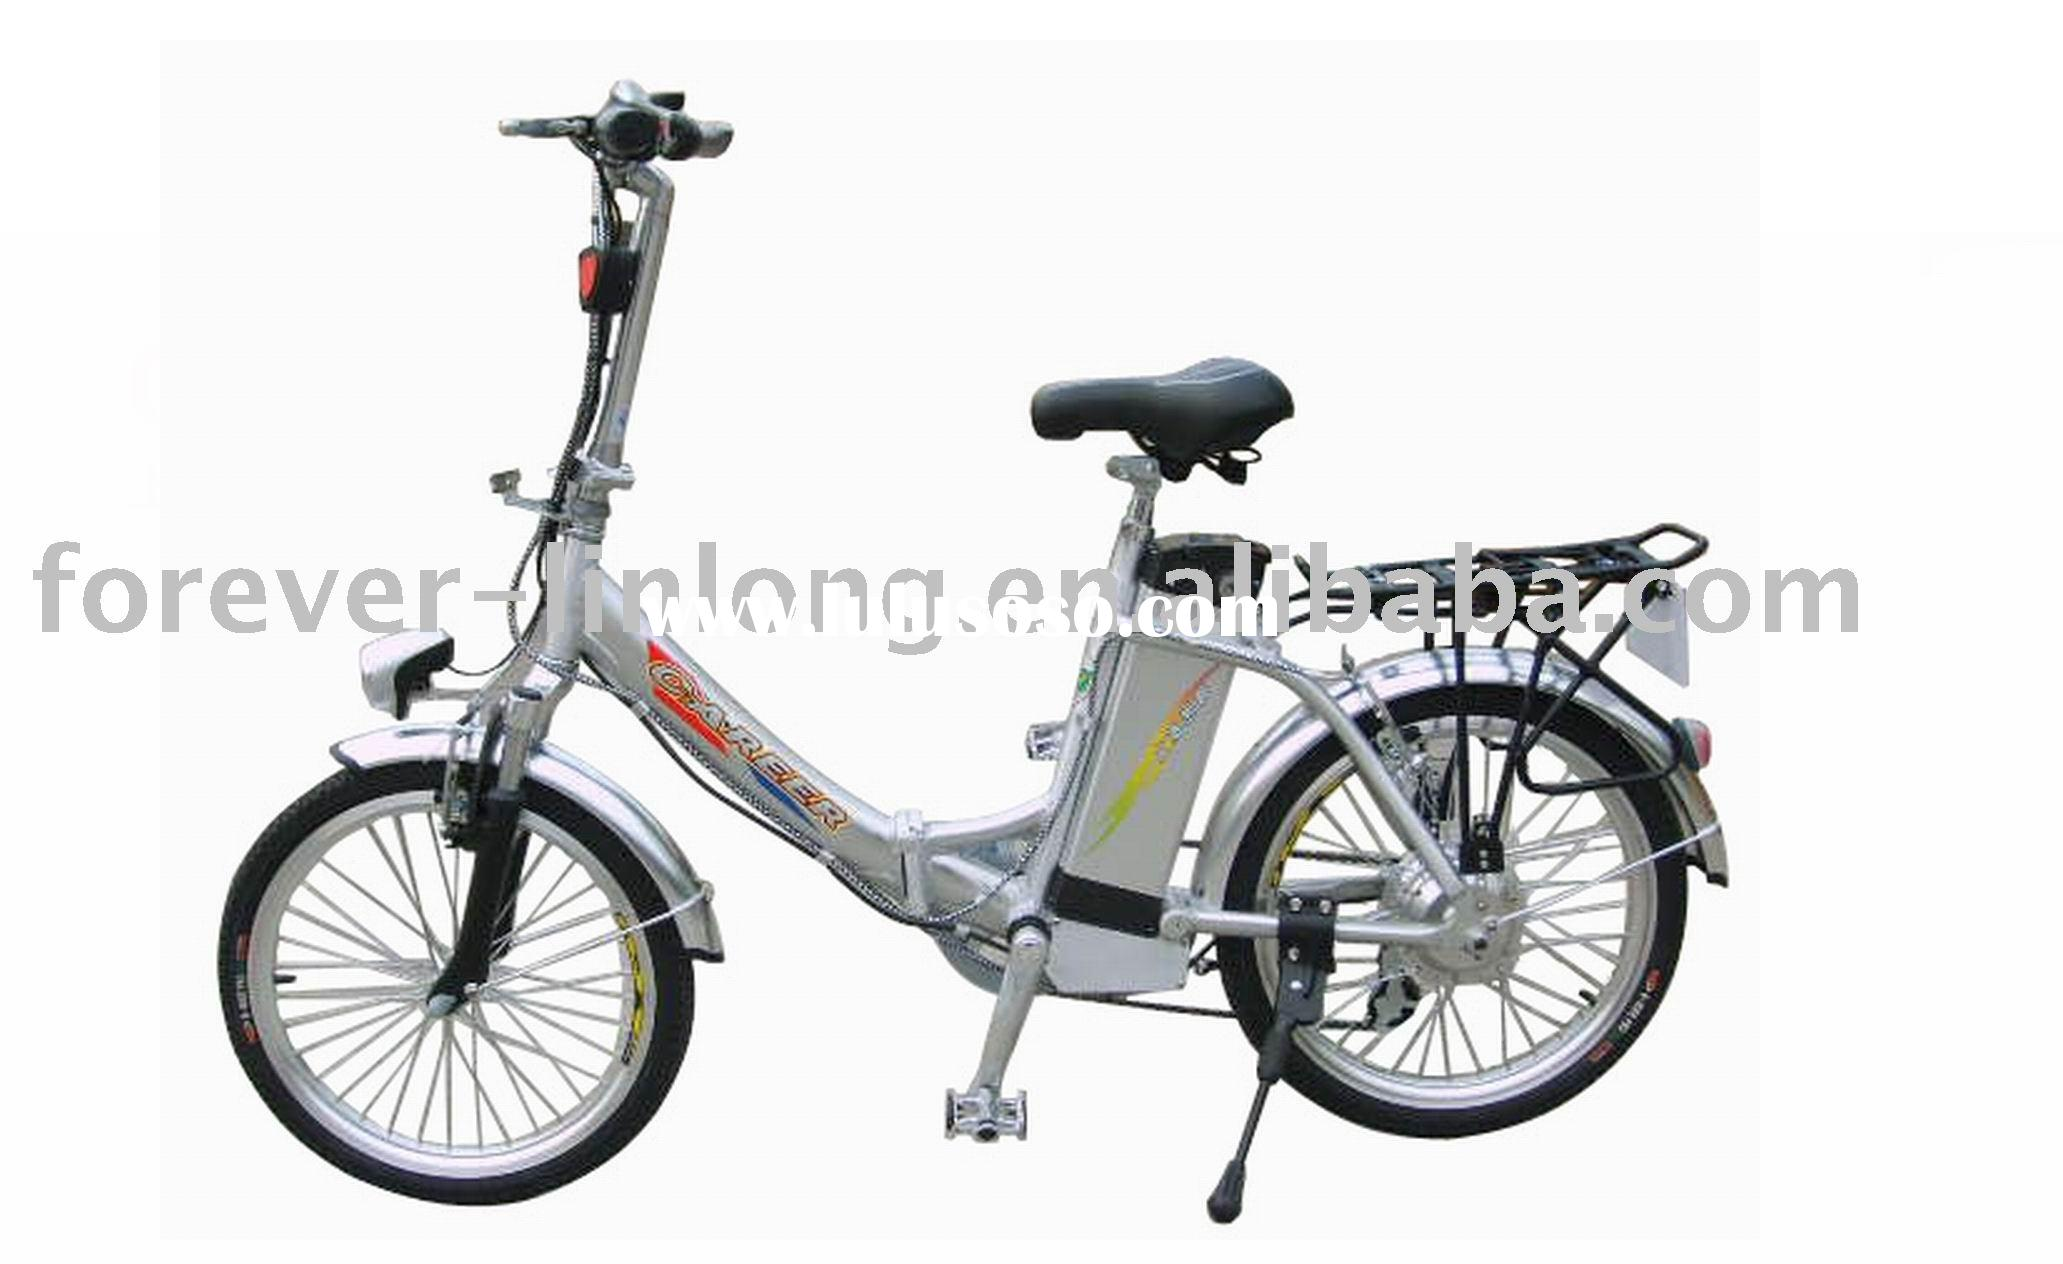 Folding Lithium Electric Bicycle Folding Lithium Electric